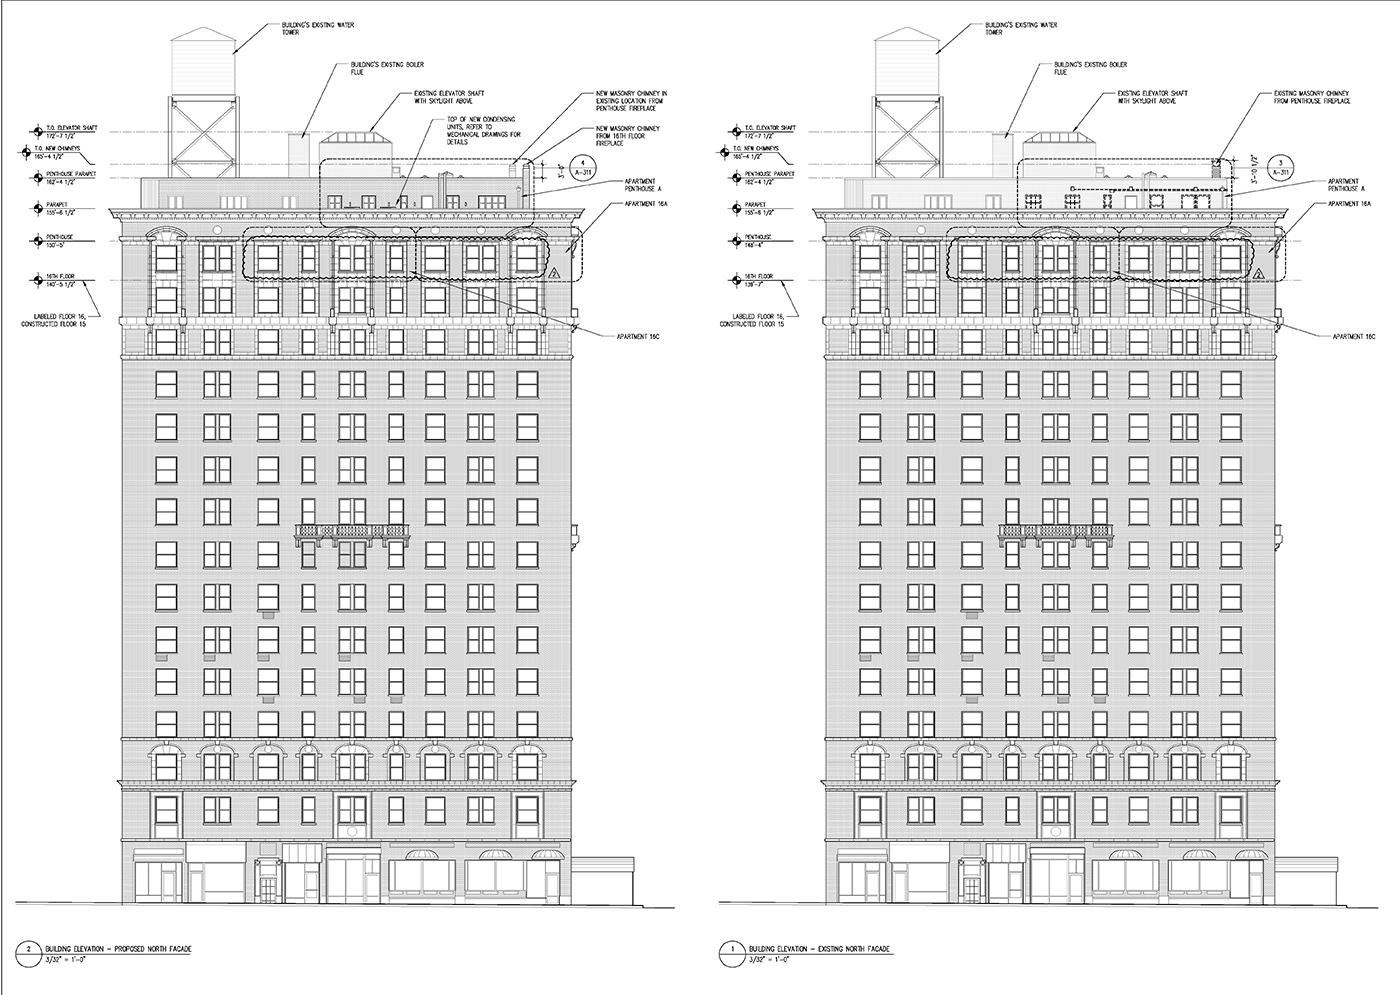 WEA_north elevation.png